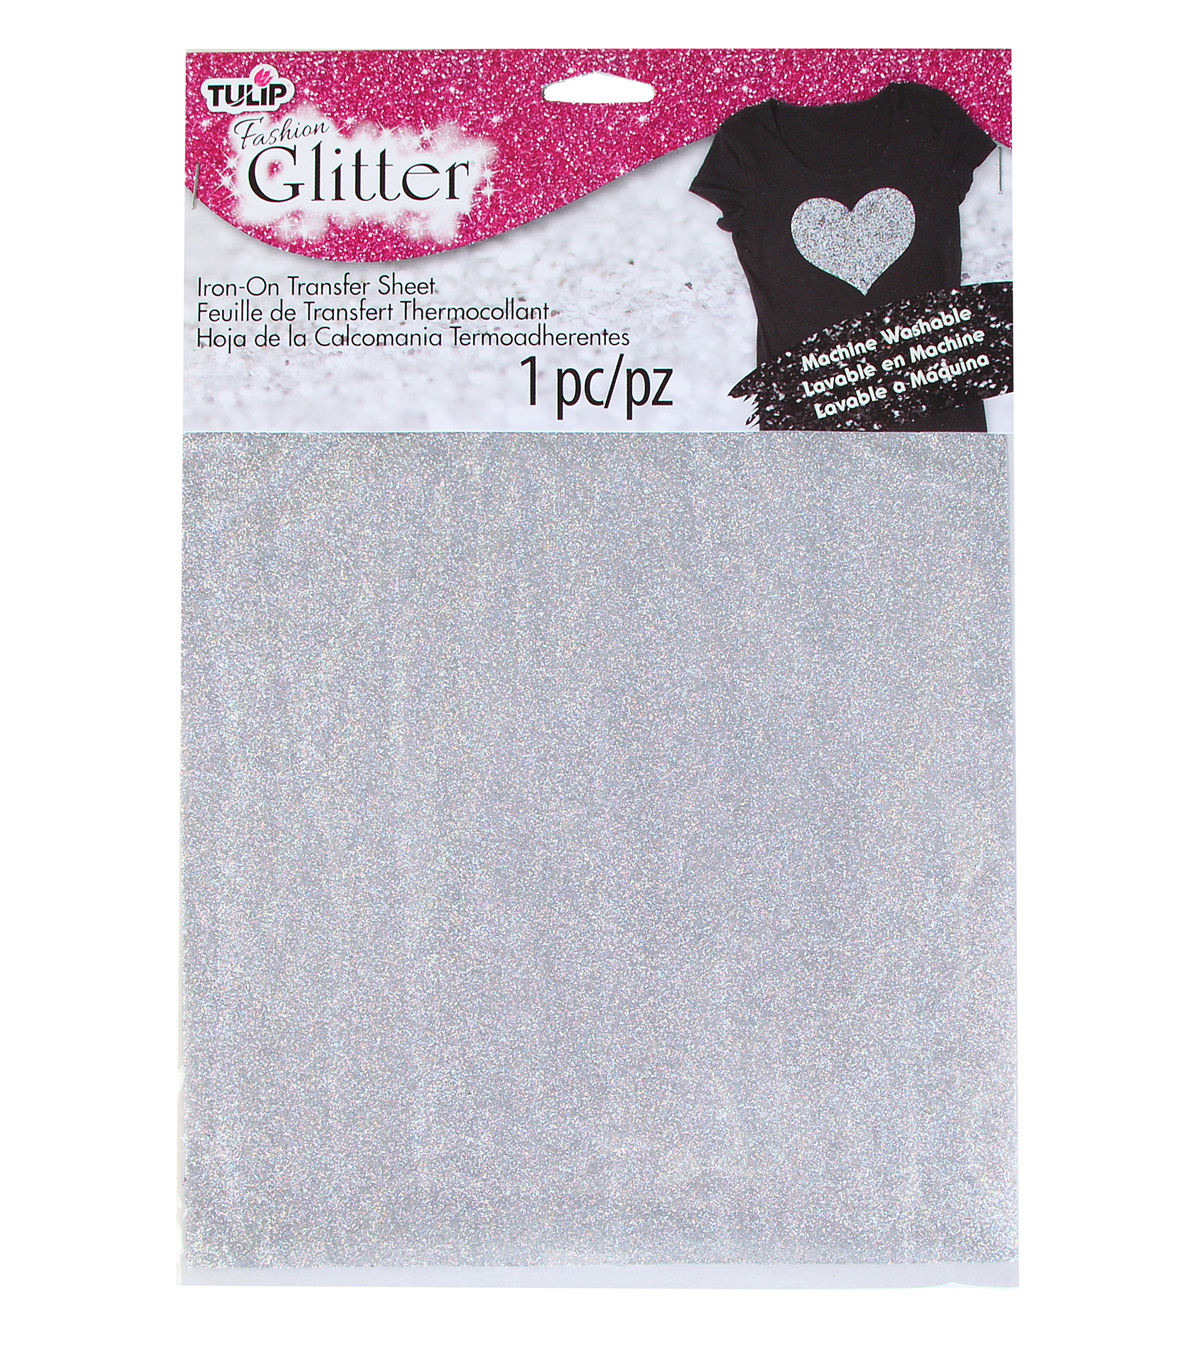 Tulip Fashion Glitter Iron-On Transfer Sheet Silver Glitter